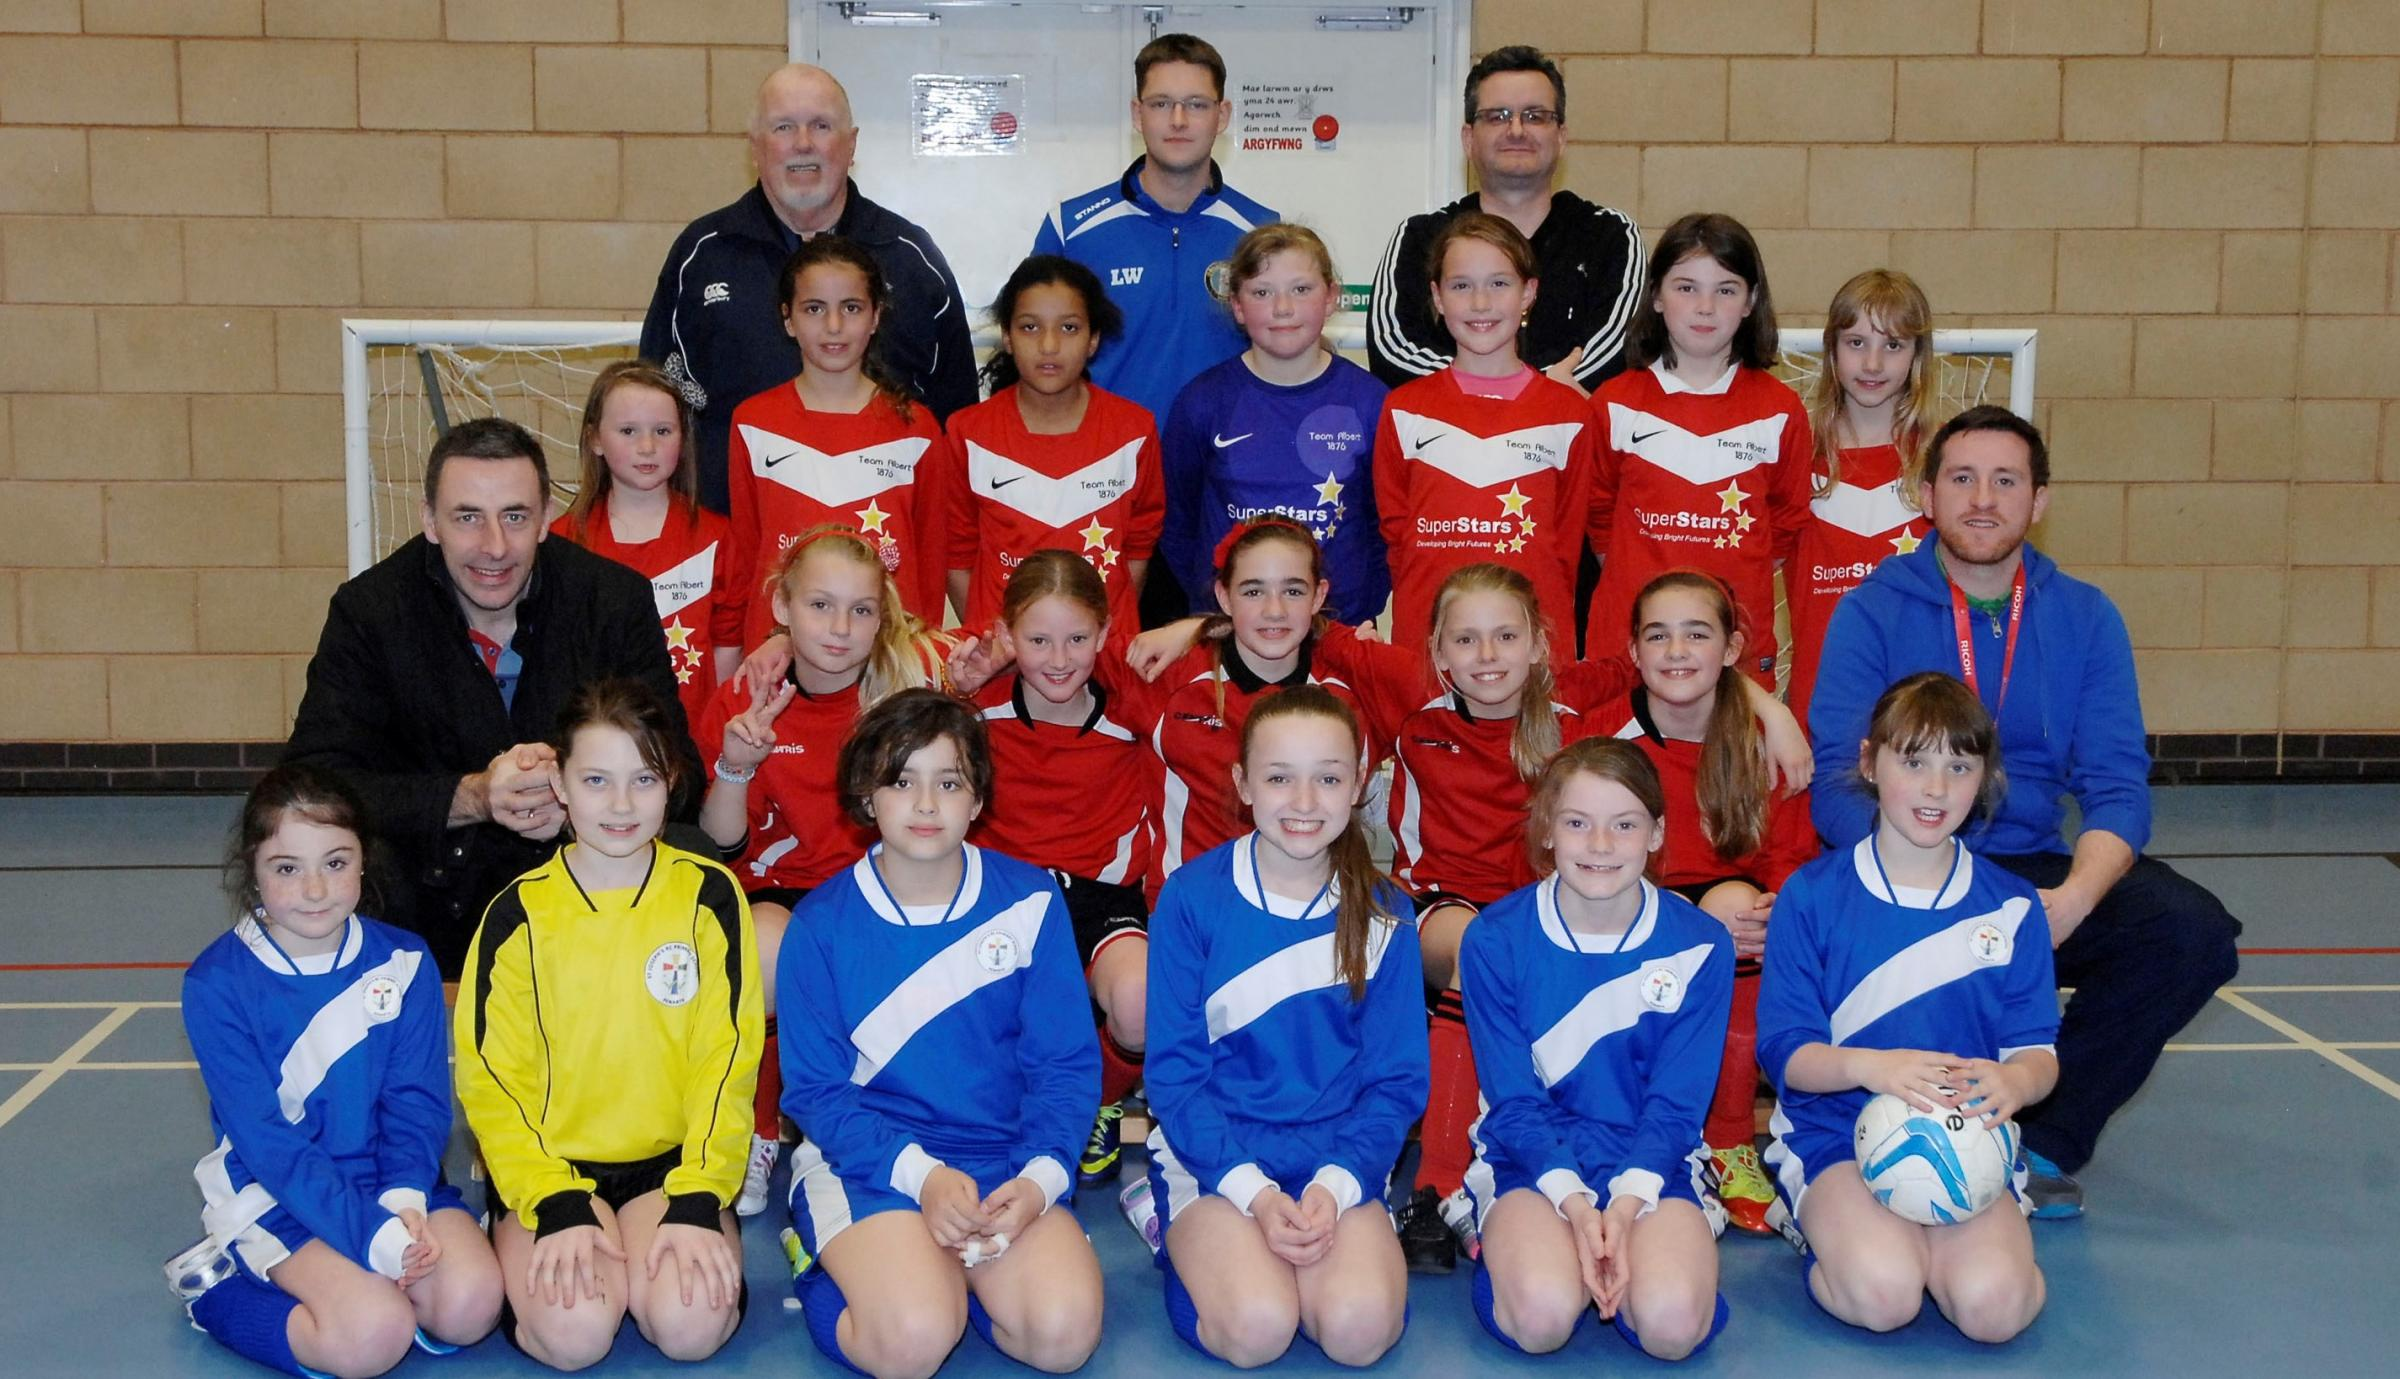 GIRLS' LEAGUE: The popularity of girls' football in the Penarth area has been boosted by a recent Primary Schools' League developed by the Vale Ladies & Girls Football Club.